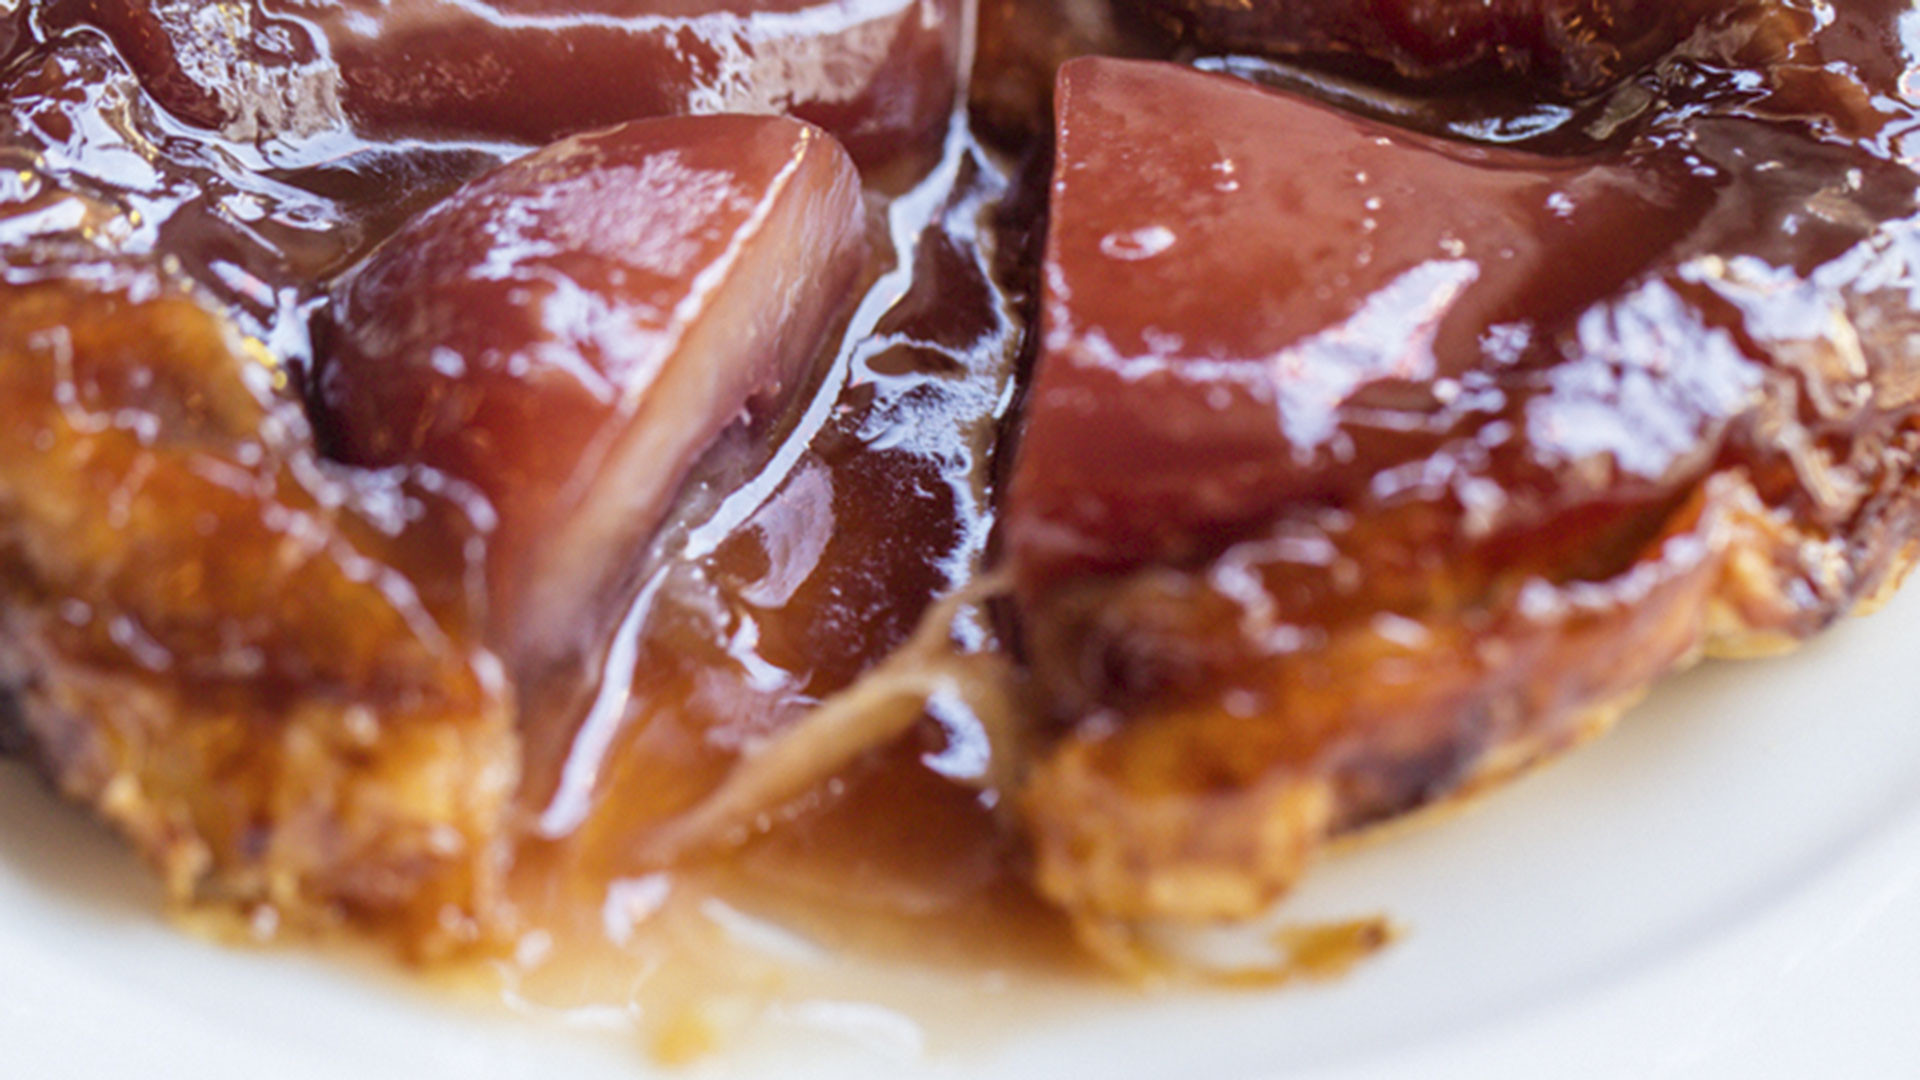 Pear and red wine tatin, Piquet